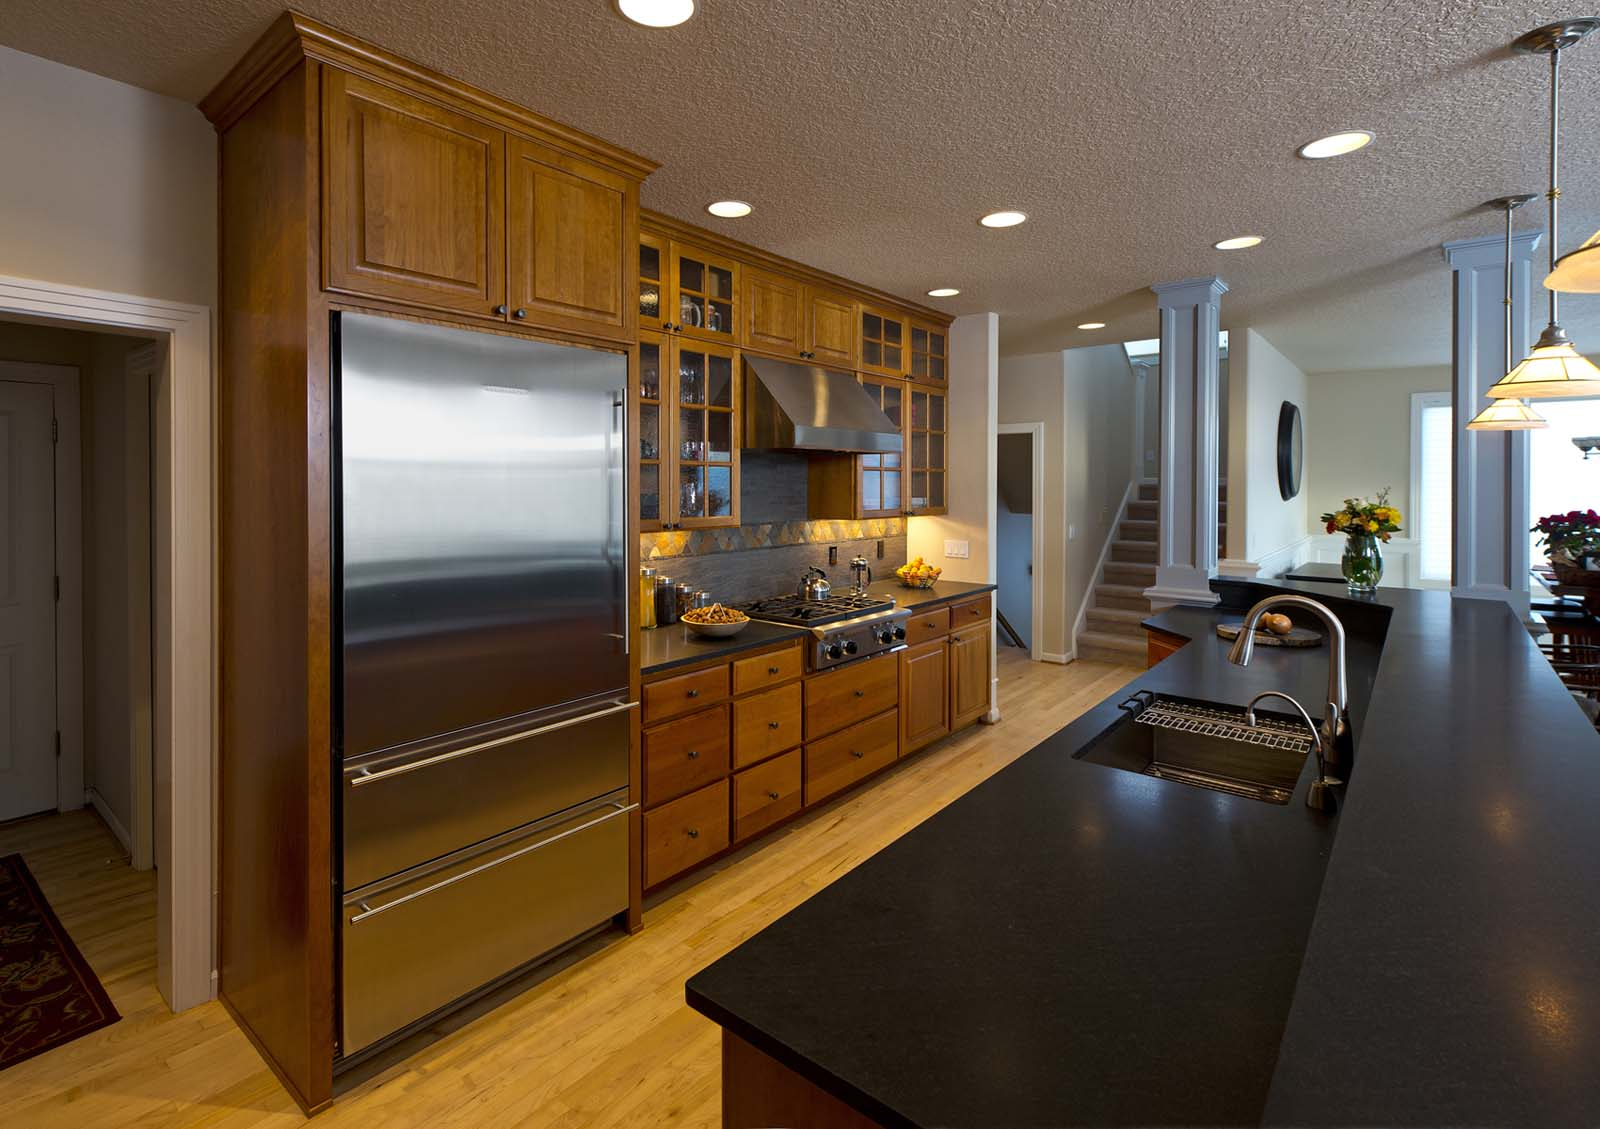 Kitchen Remodeling Portland Or Model Stunning Kitchen Remodeling In Portland Or  Levans Design